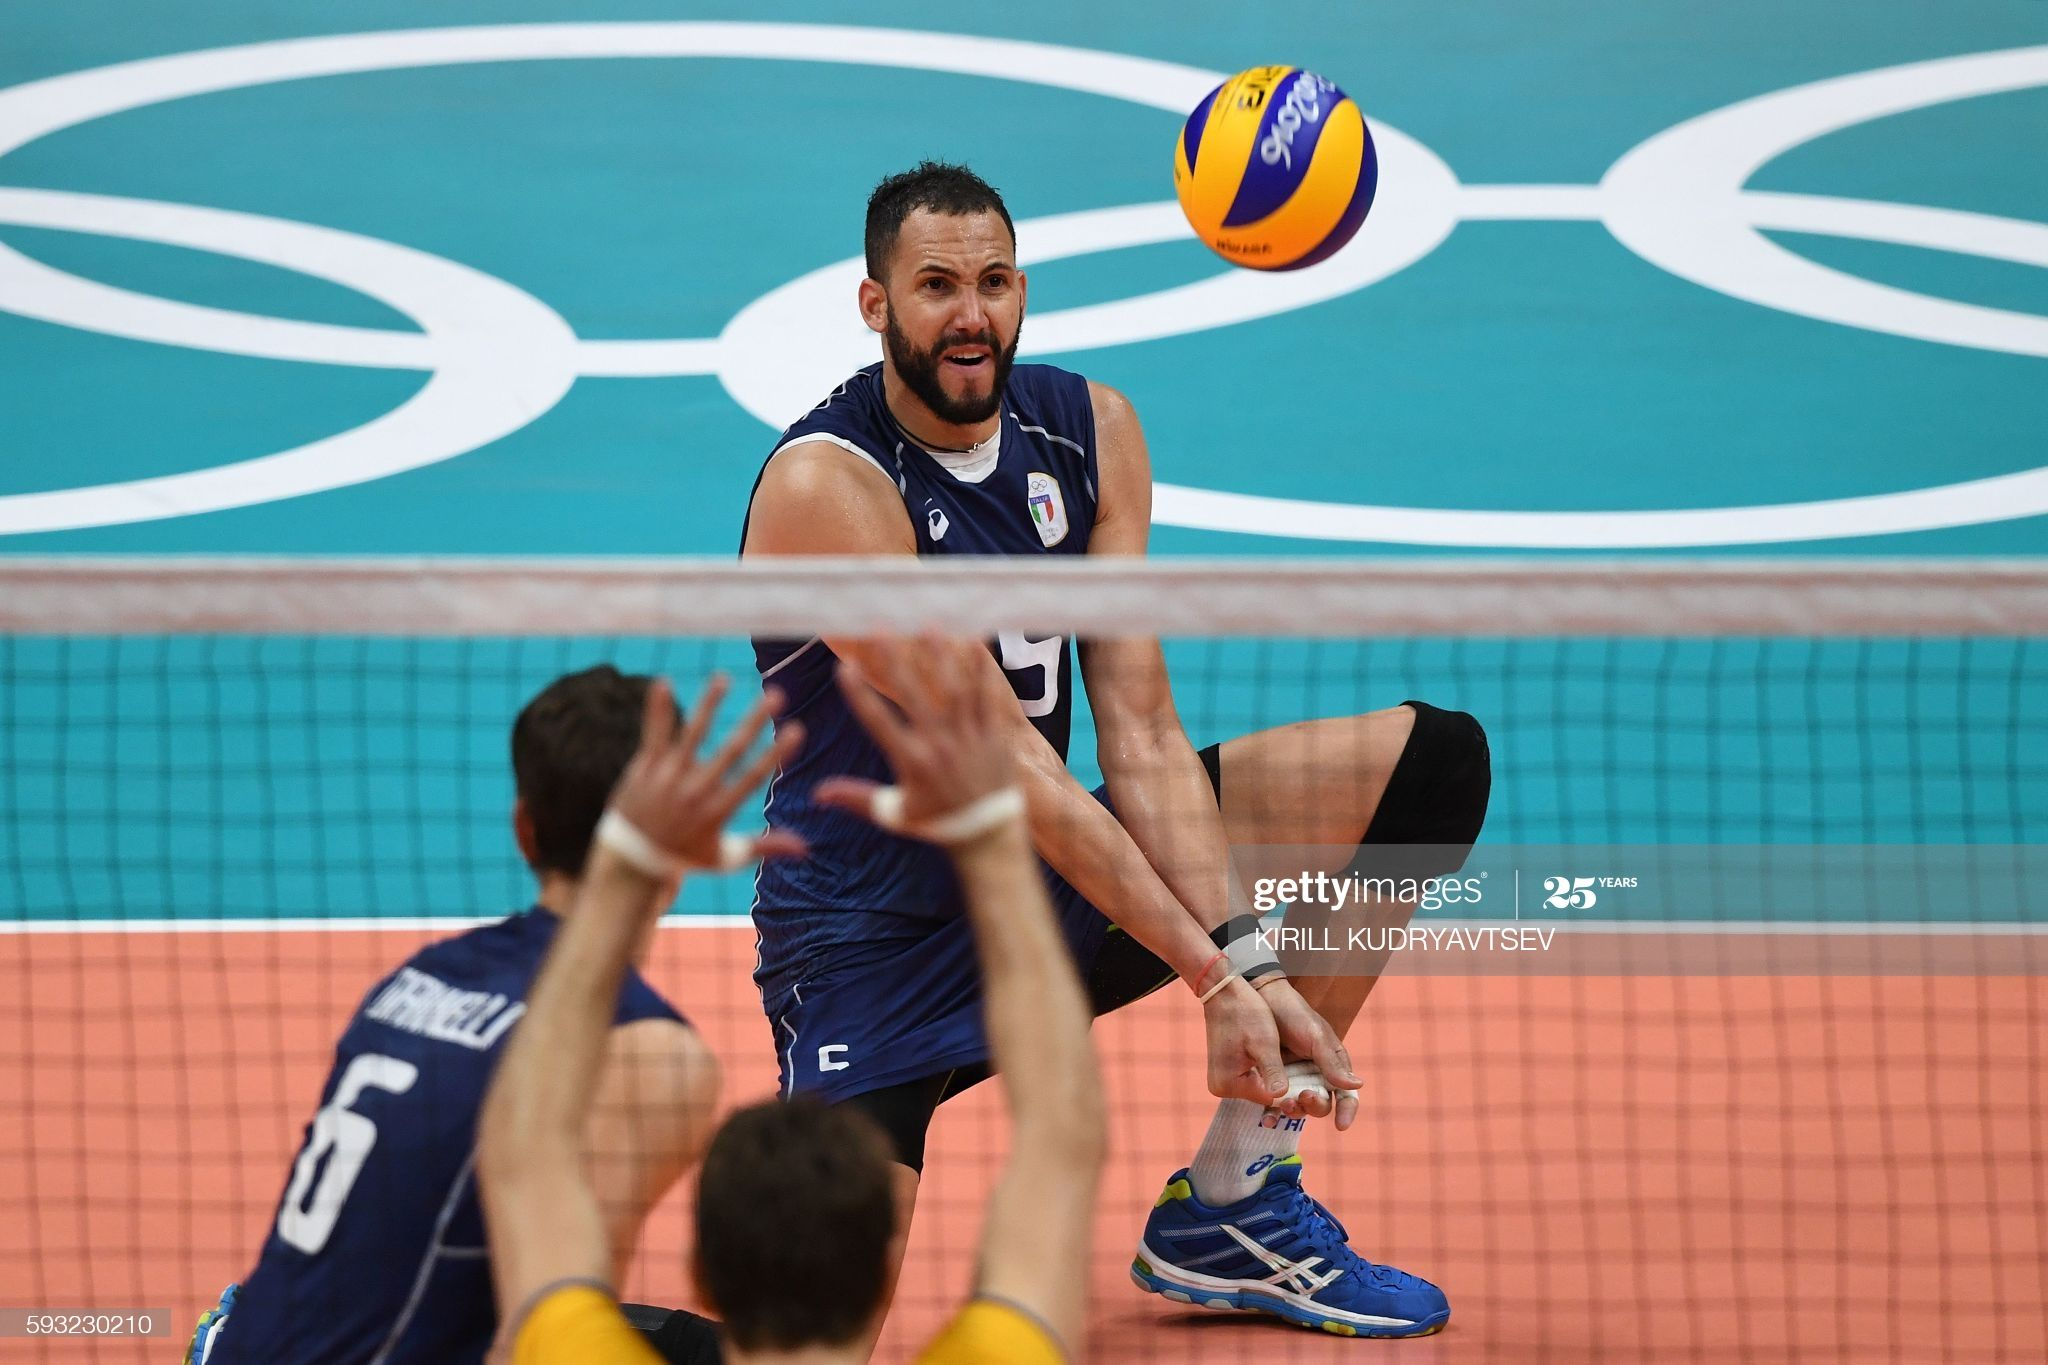 Italy S Osmany Juantorena Sets The Ball During The Men S Gold Medal Volleyball Match Between Italy And Brazi In 2020 Rio Olympics 2016 2016 Olympic Games Olympic Games